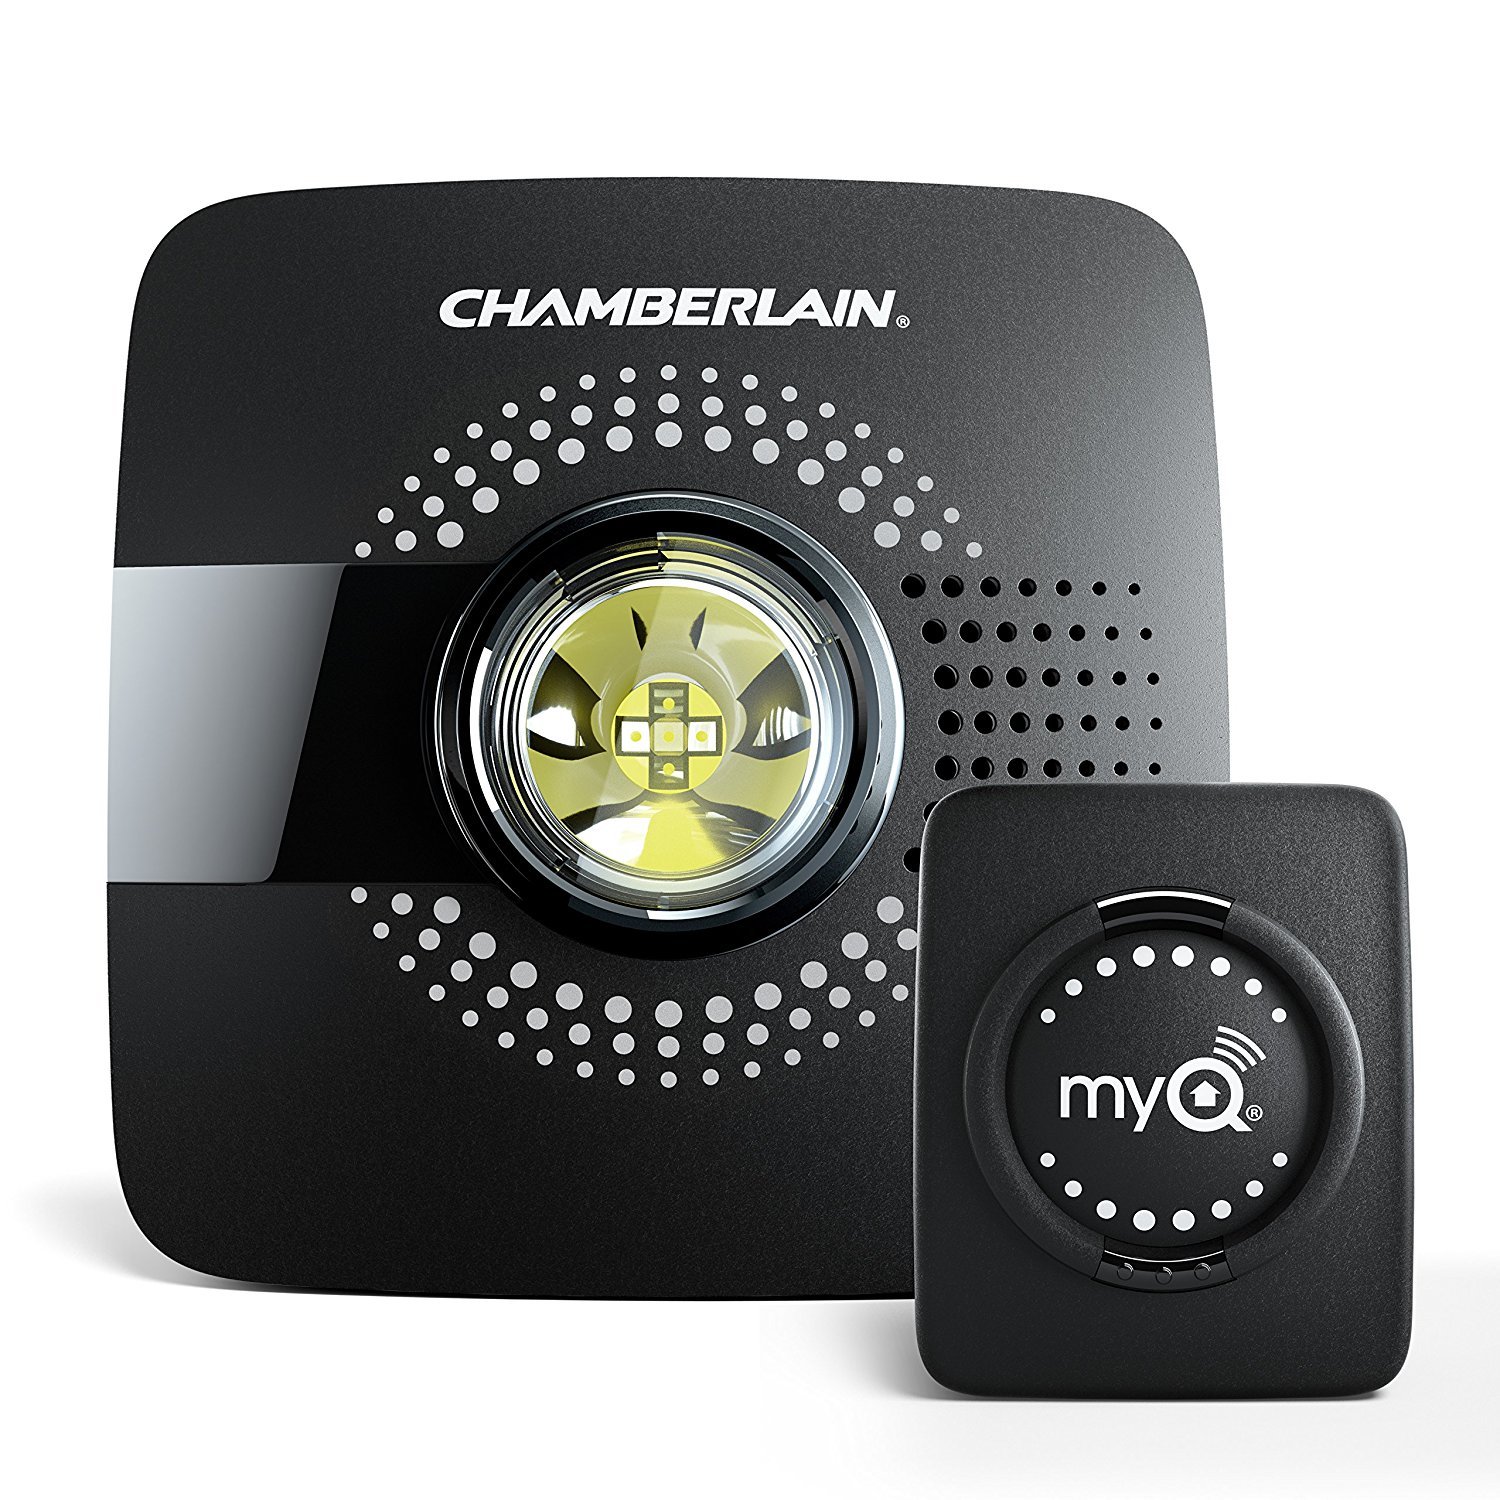 Chamberlin smart garage door opener